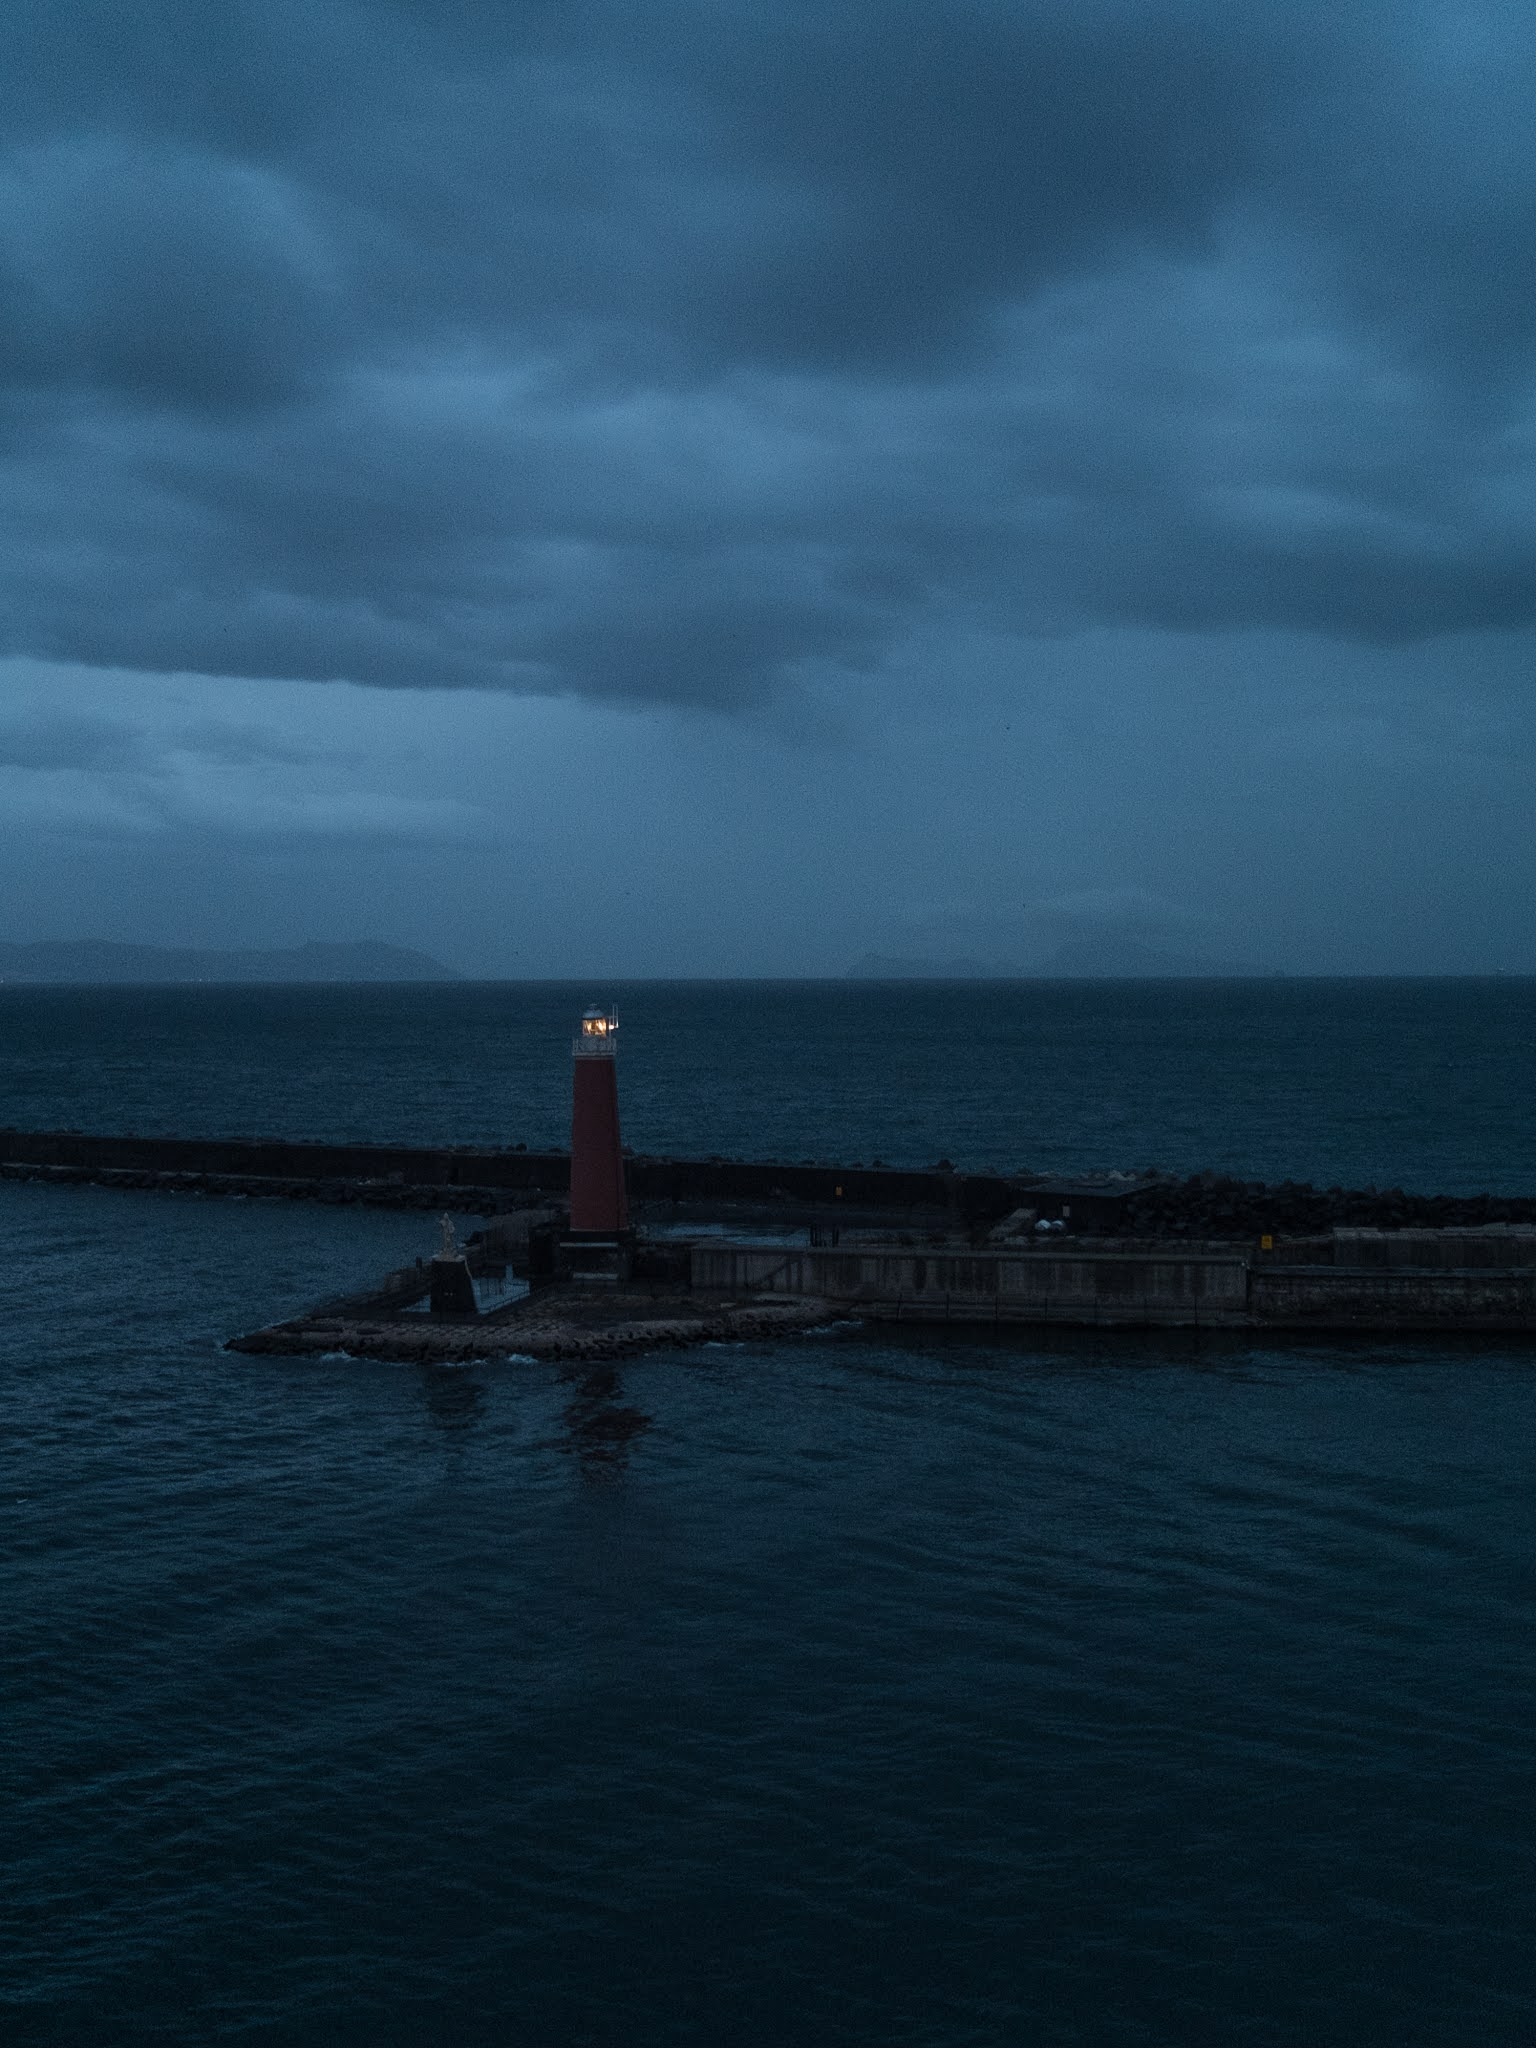 The lighthouse on Molo di San Vincenzo in the port of Naples at dawn